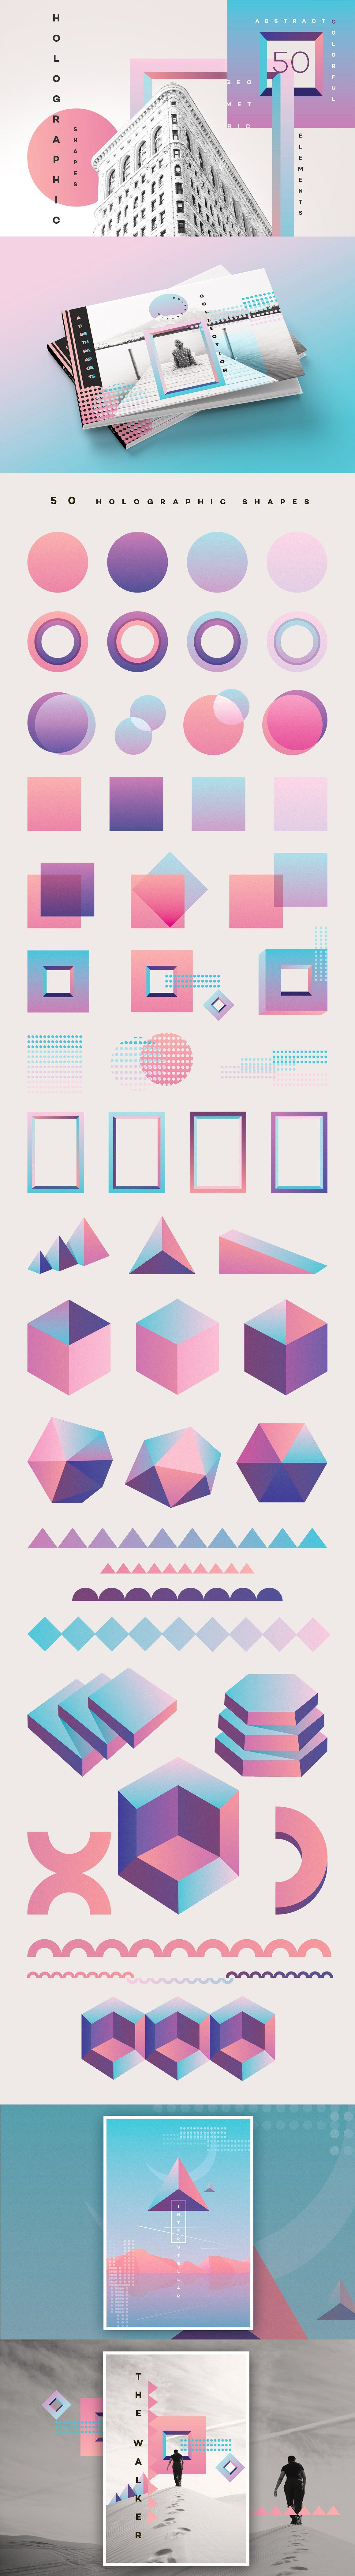 50 holographic shapes for posters invitations flyers business